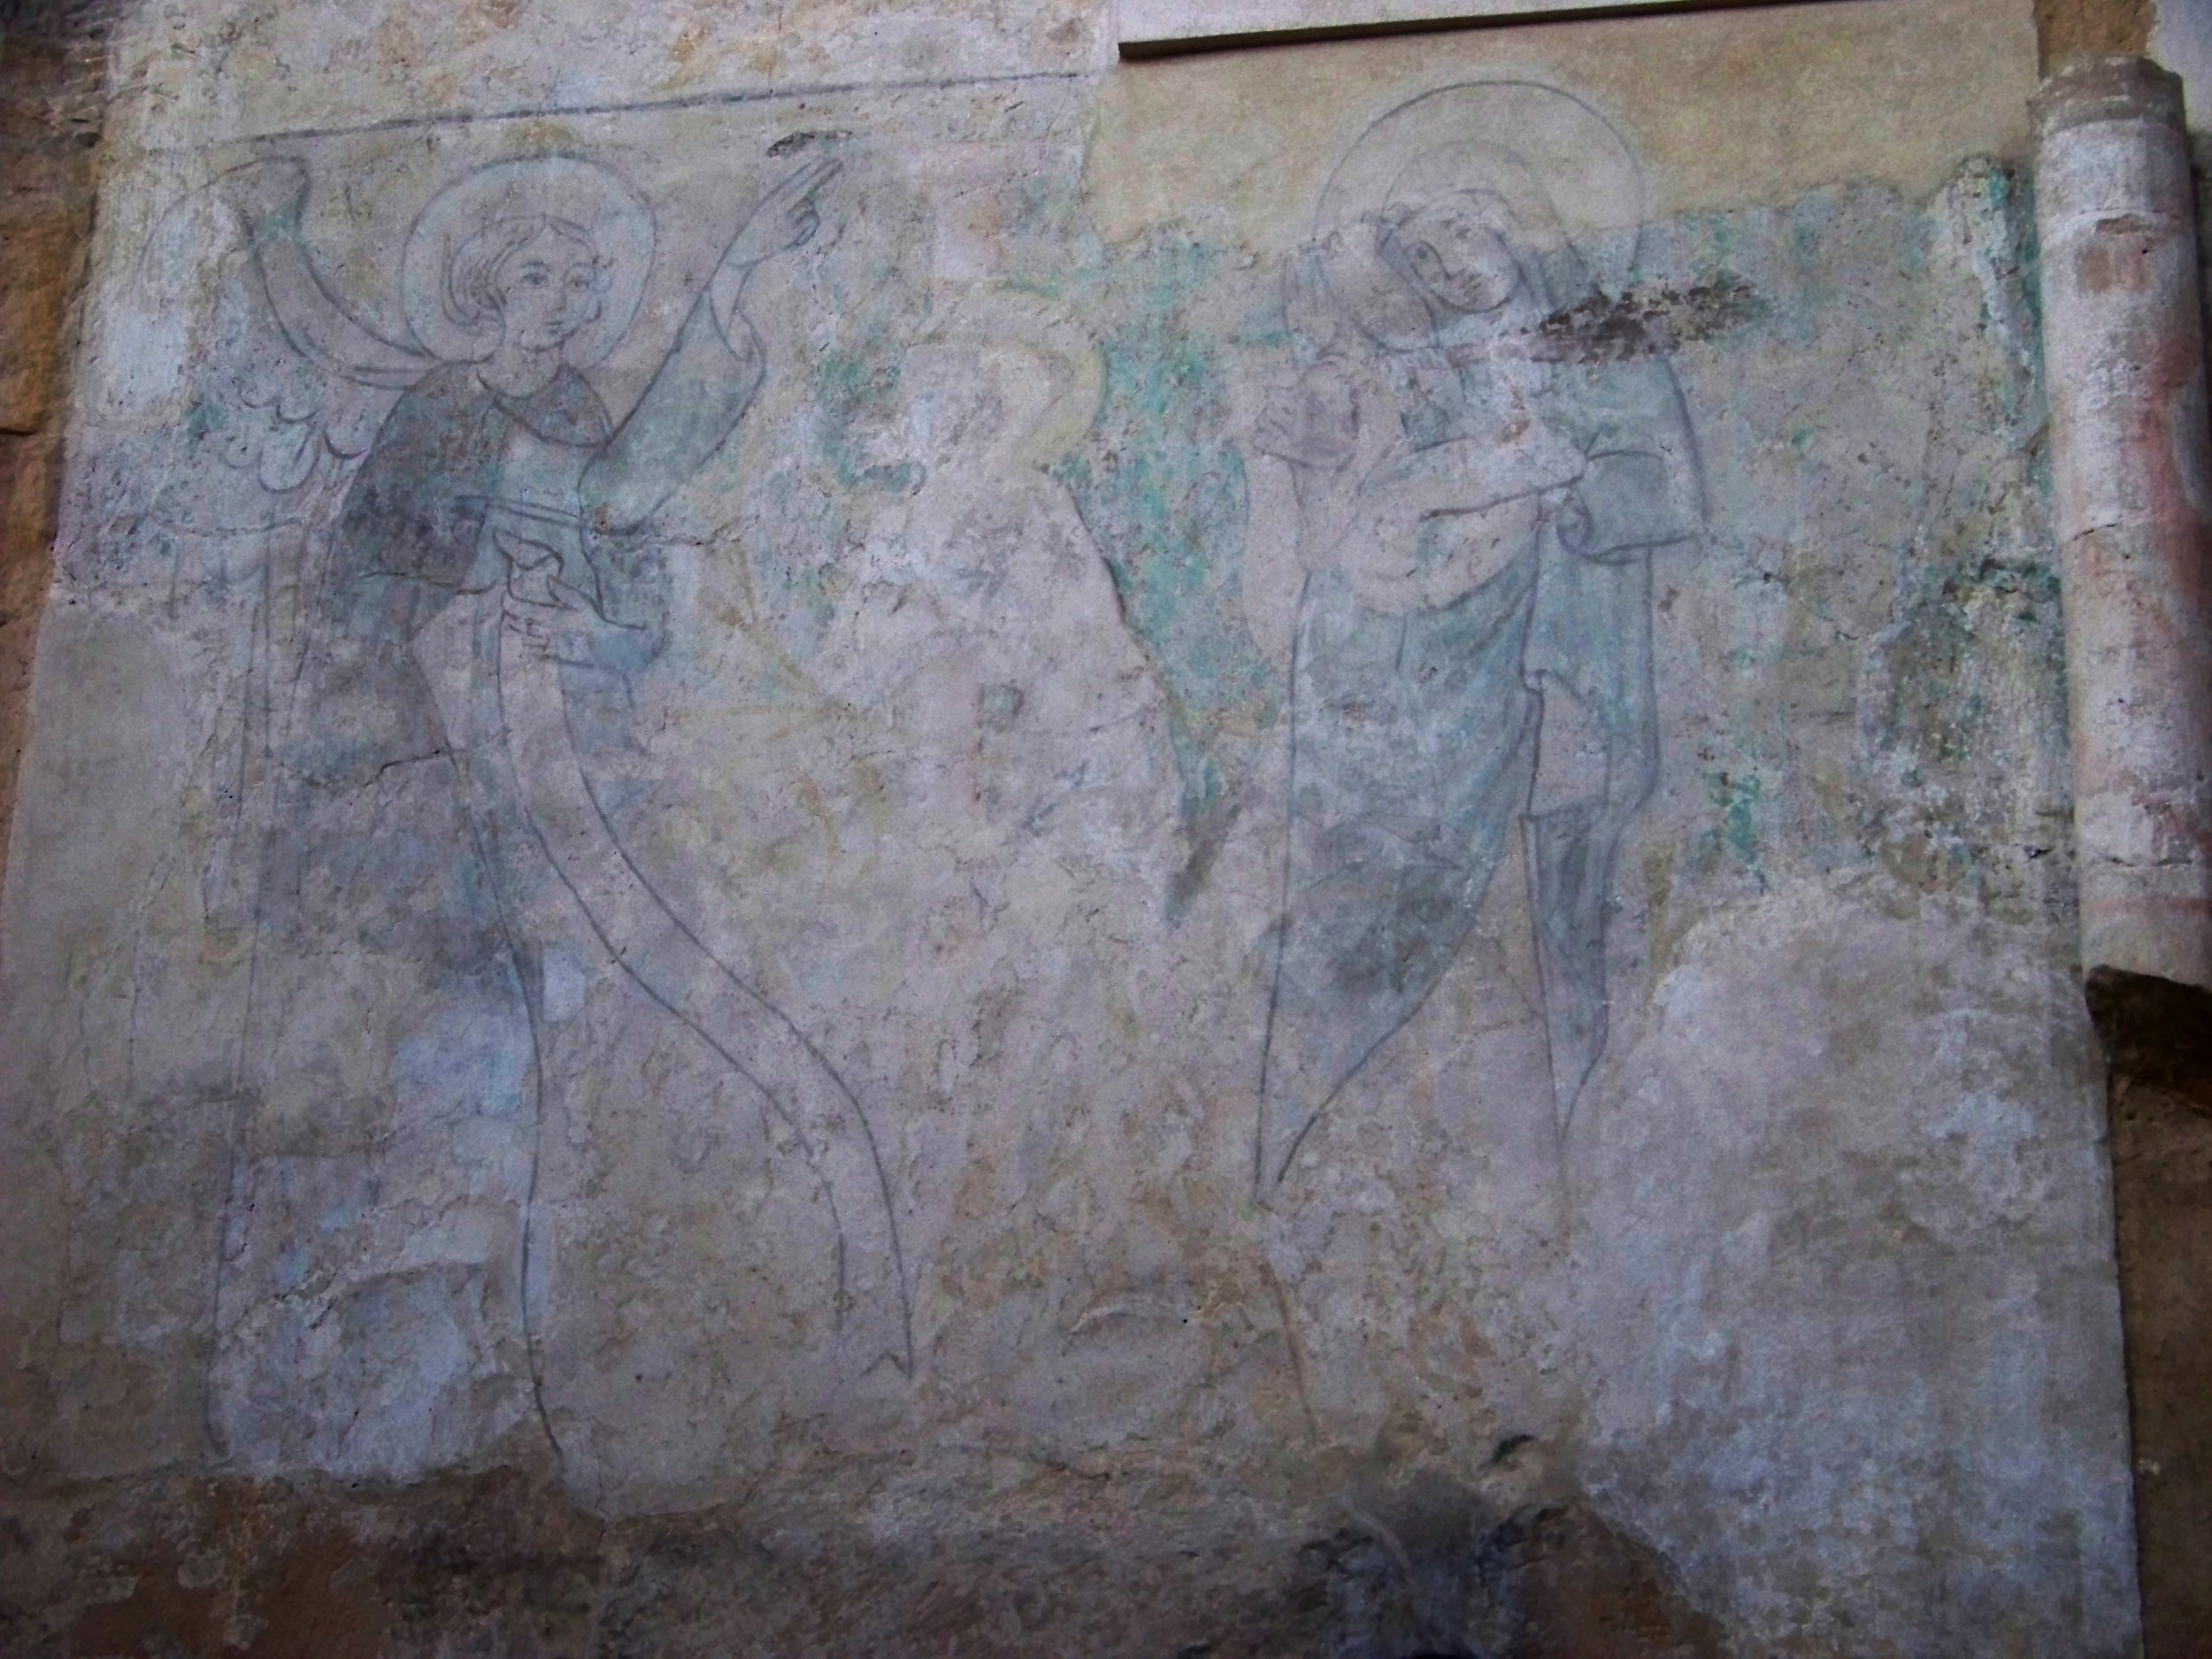 Another medieval fresco depicting what appears to be a scene of angelic benediction to the wretched. Photo by  ŠJů ( cs:ŠJů ) used with  Creative Commons  Attribution-Share Alike 3.0 Unported license.